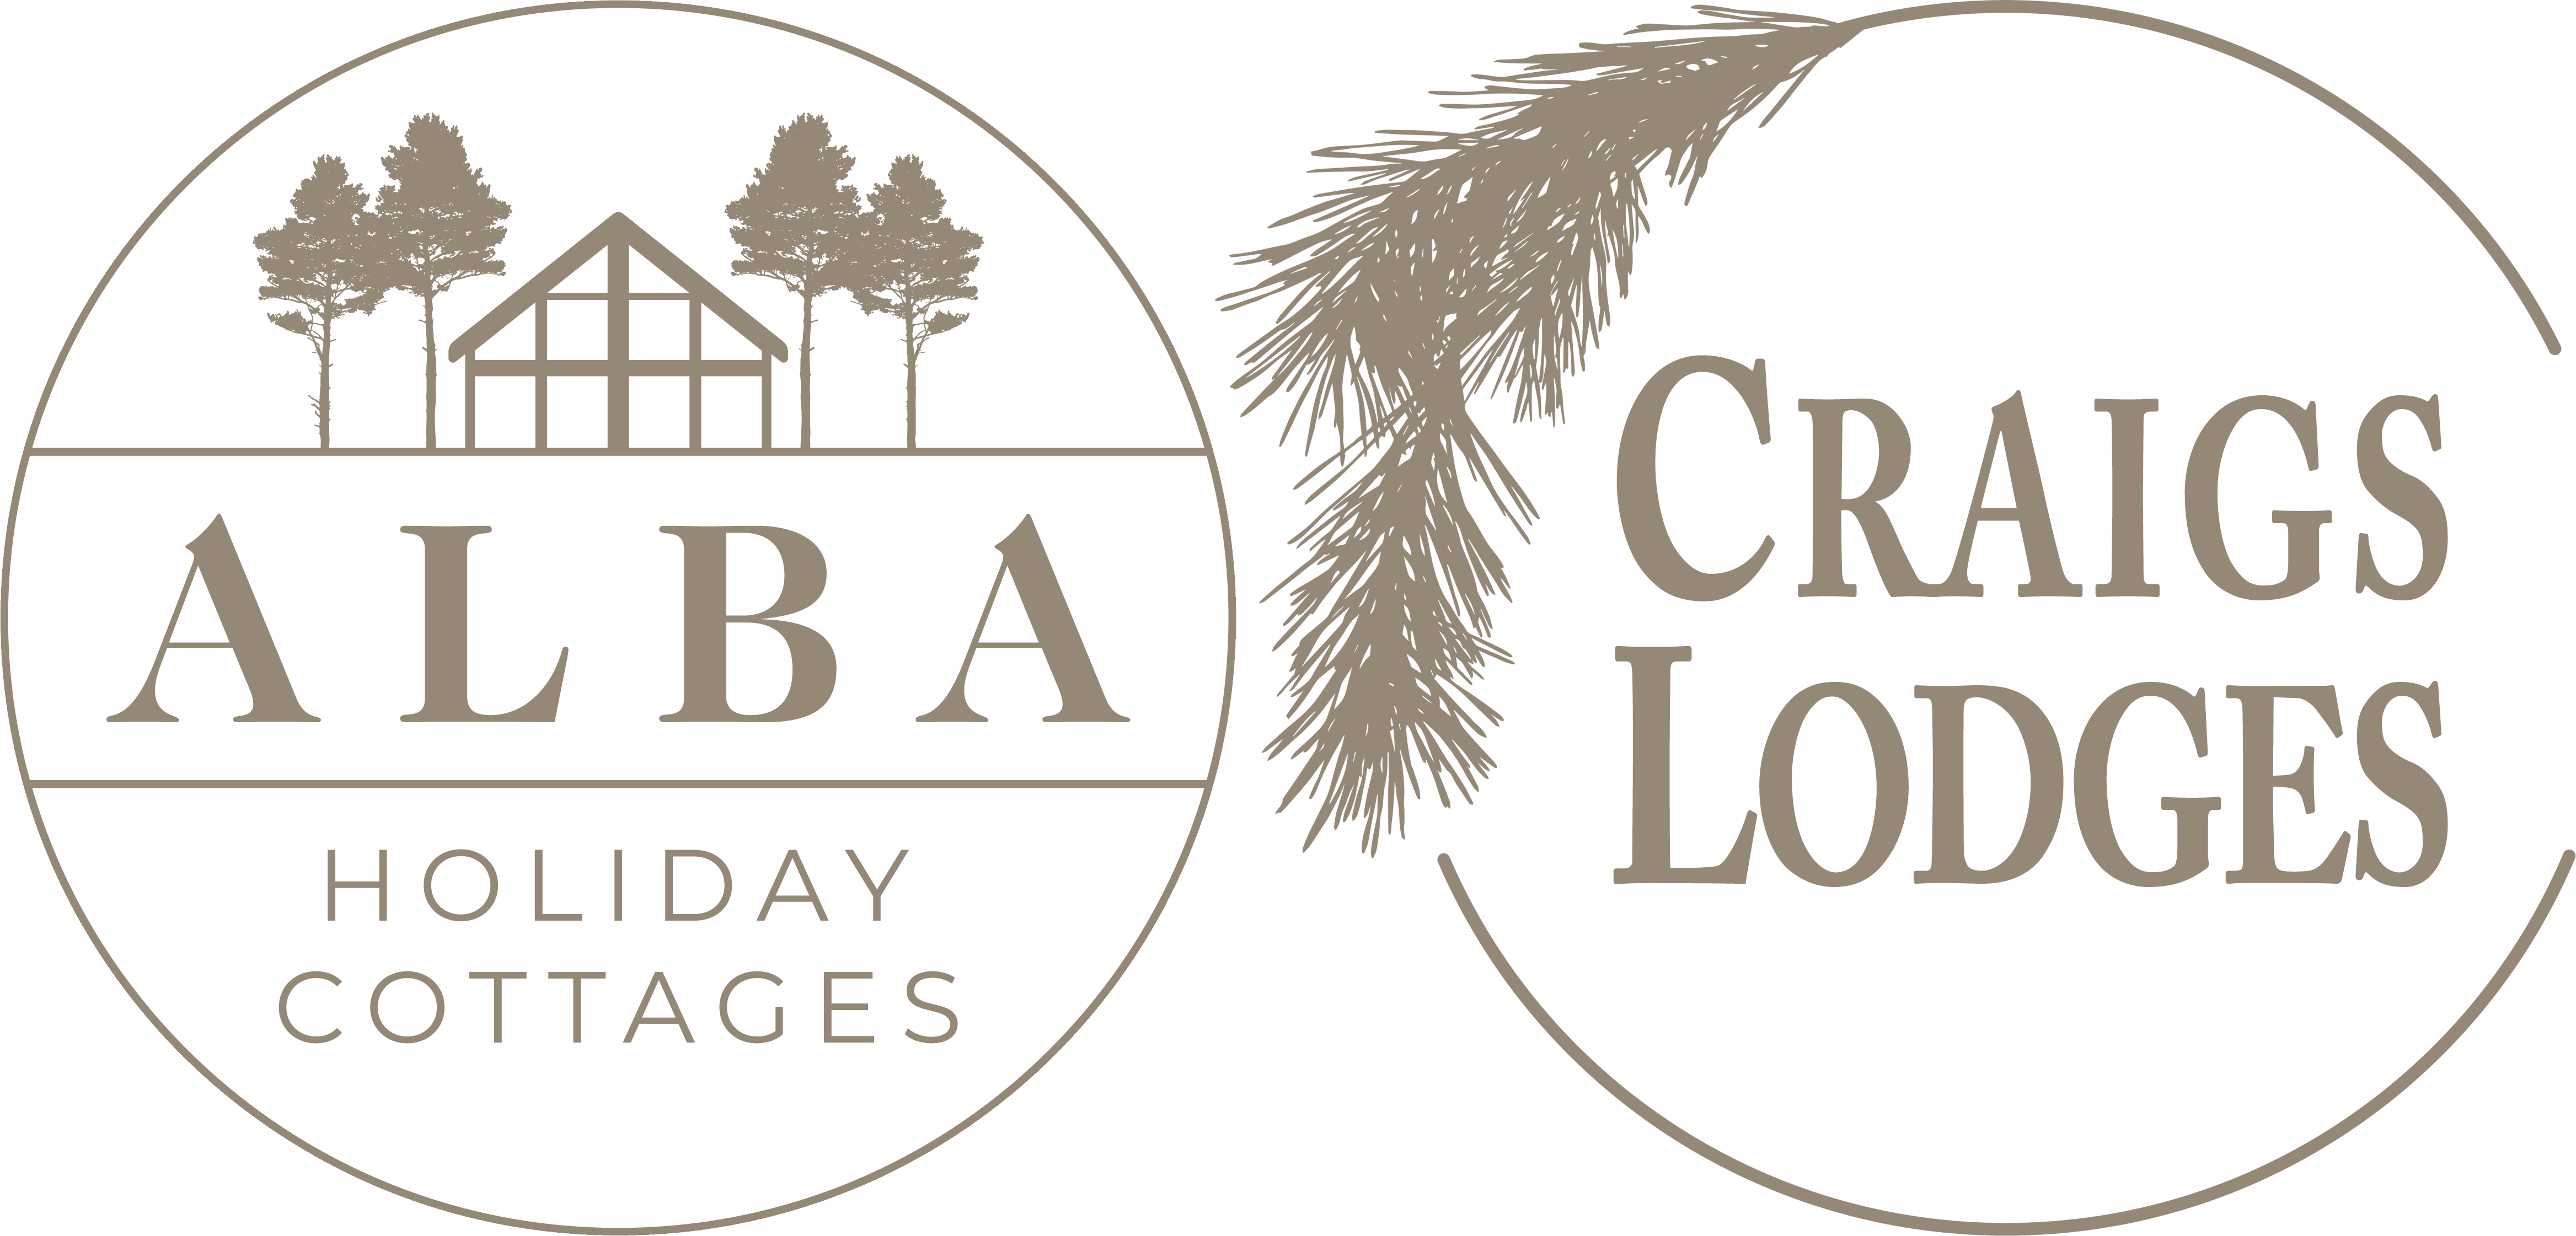 Alba Holiday Cottages & Craigs Lodges